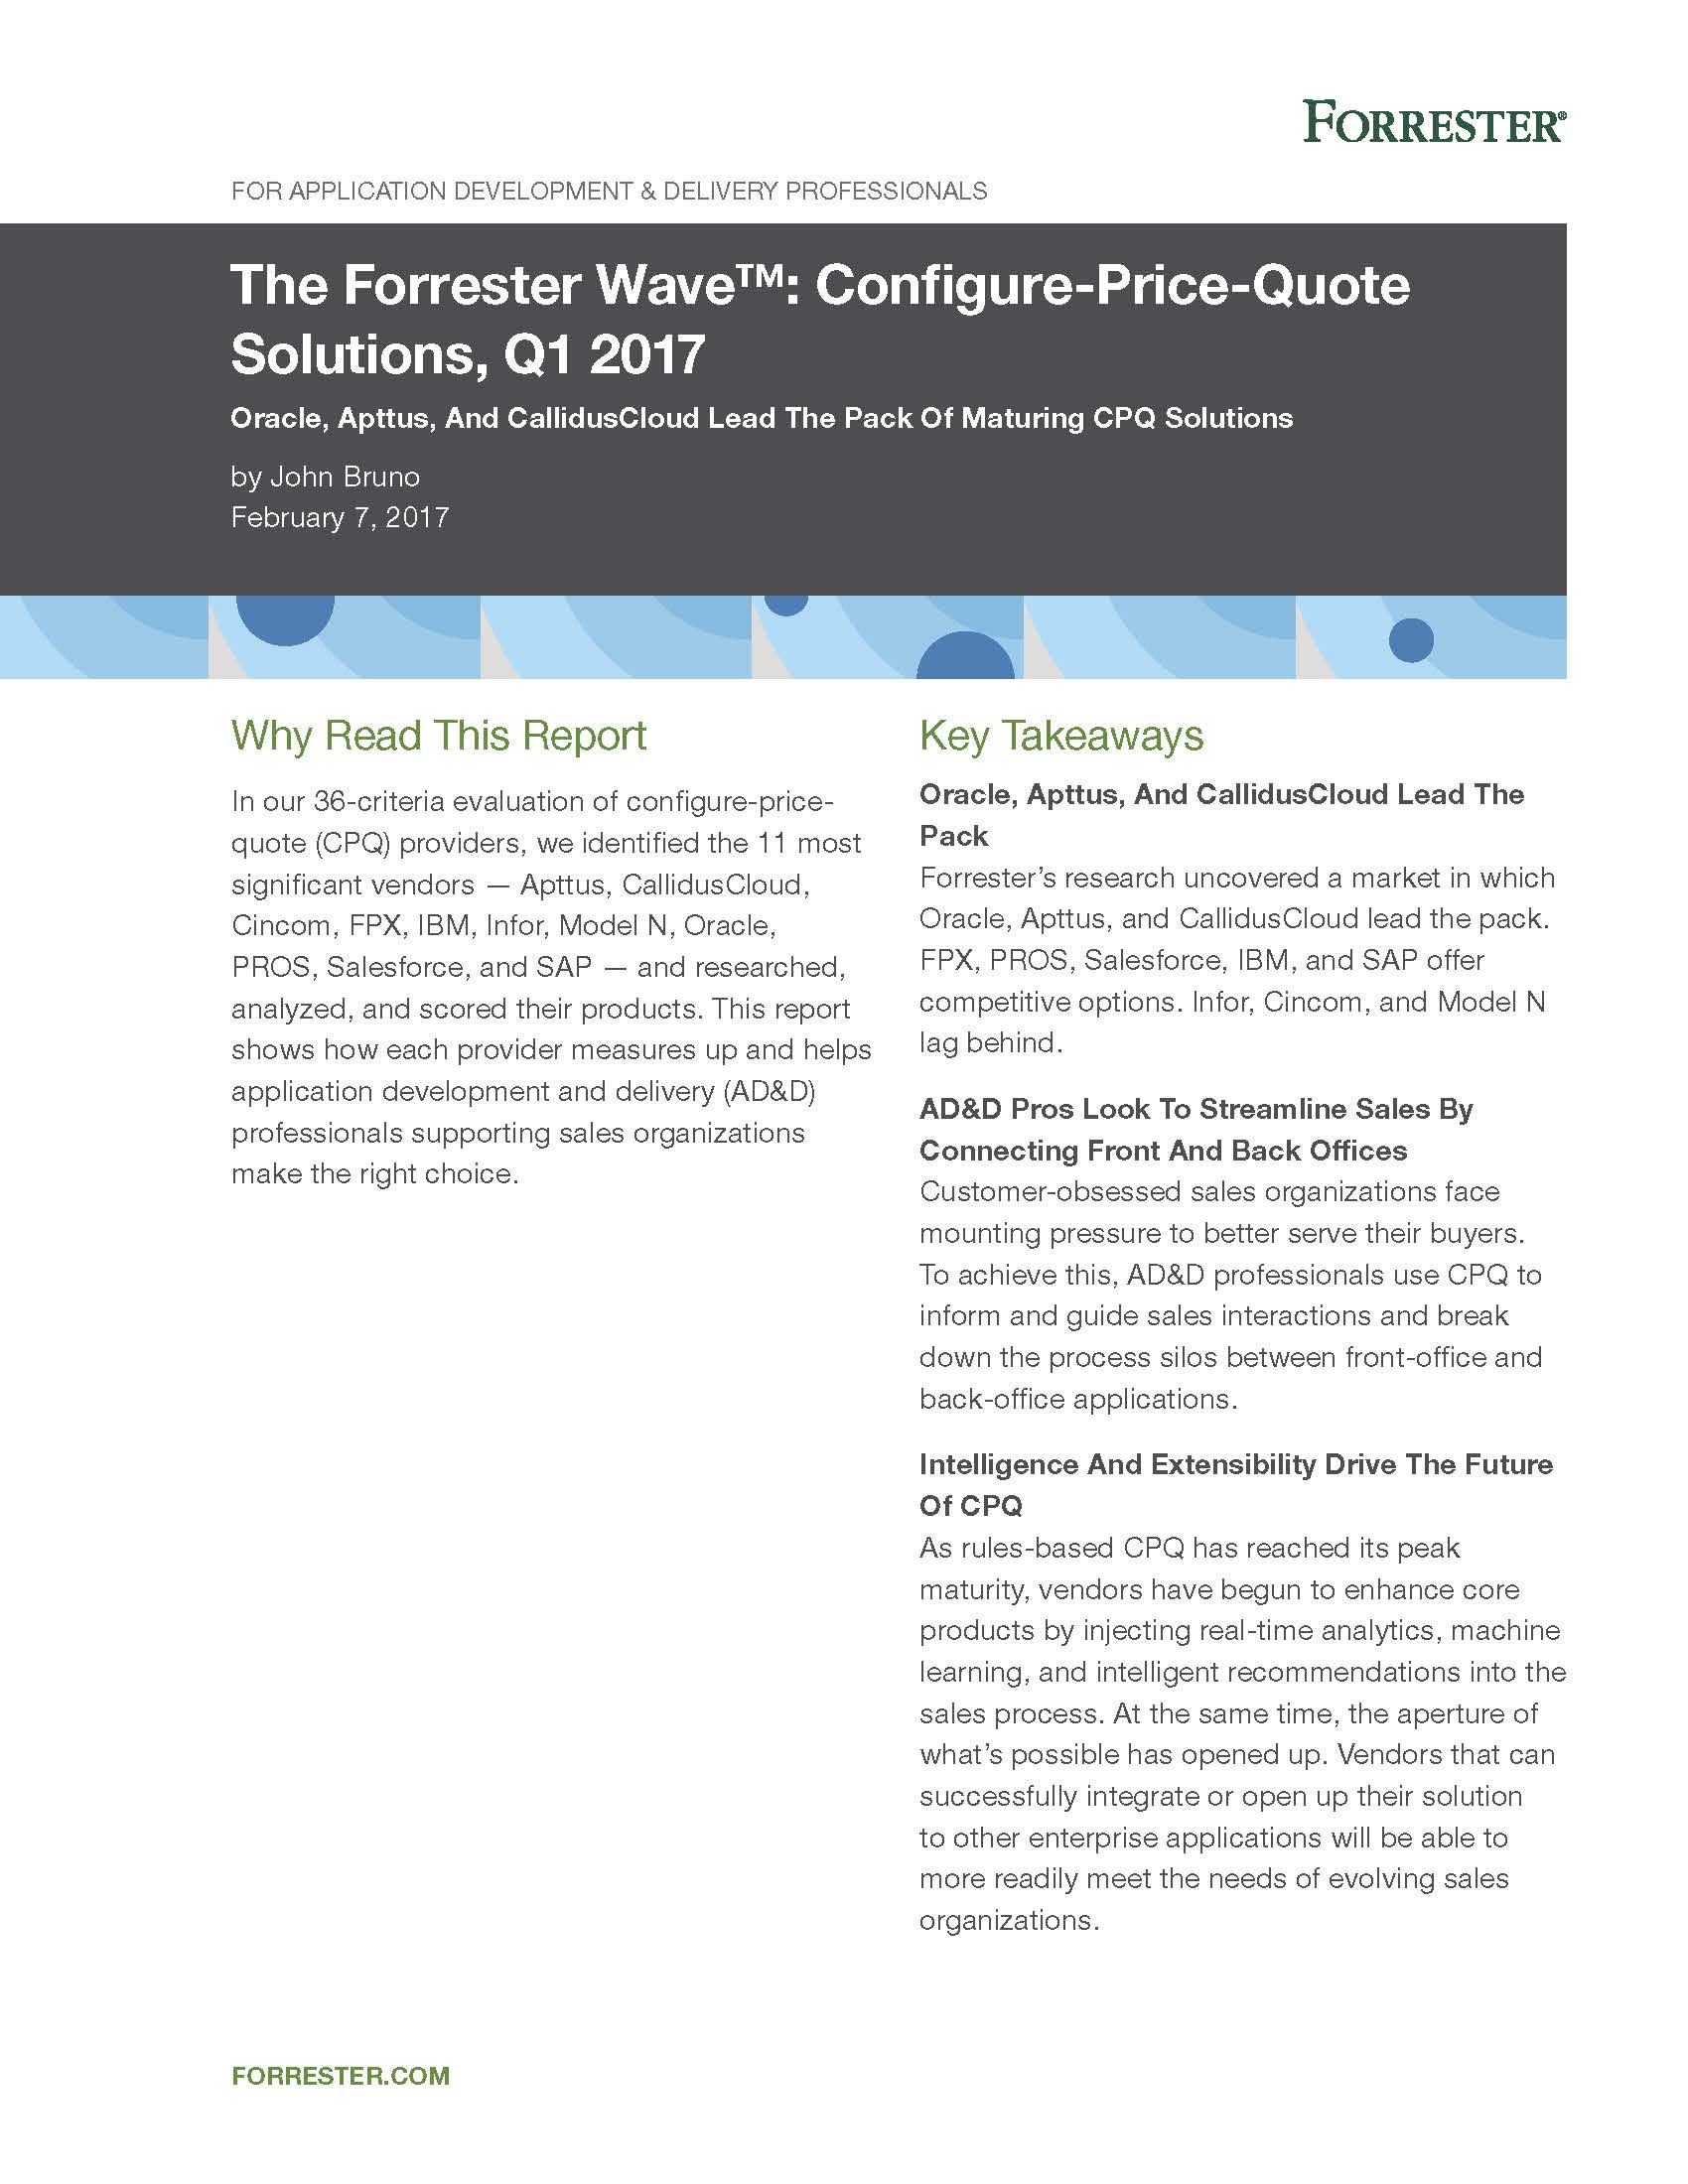 Download the Forrester CPQ Wave Report